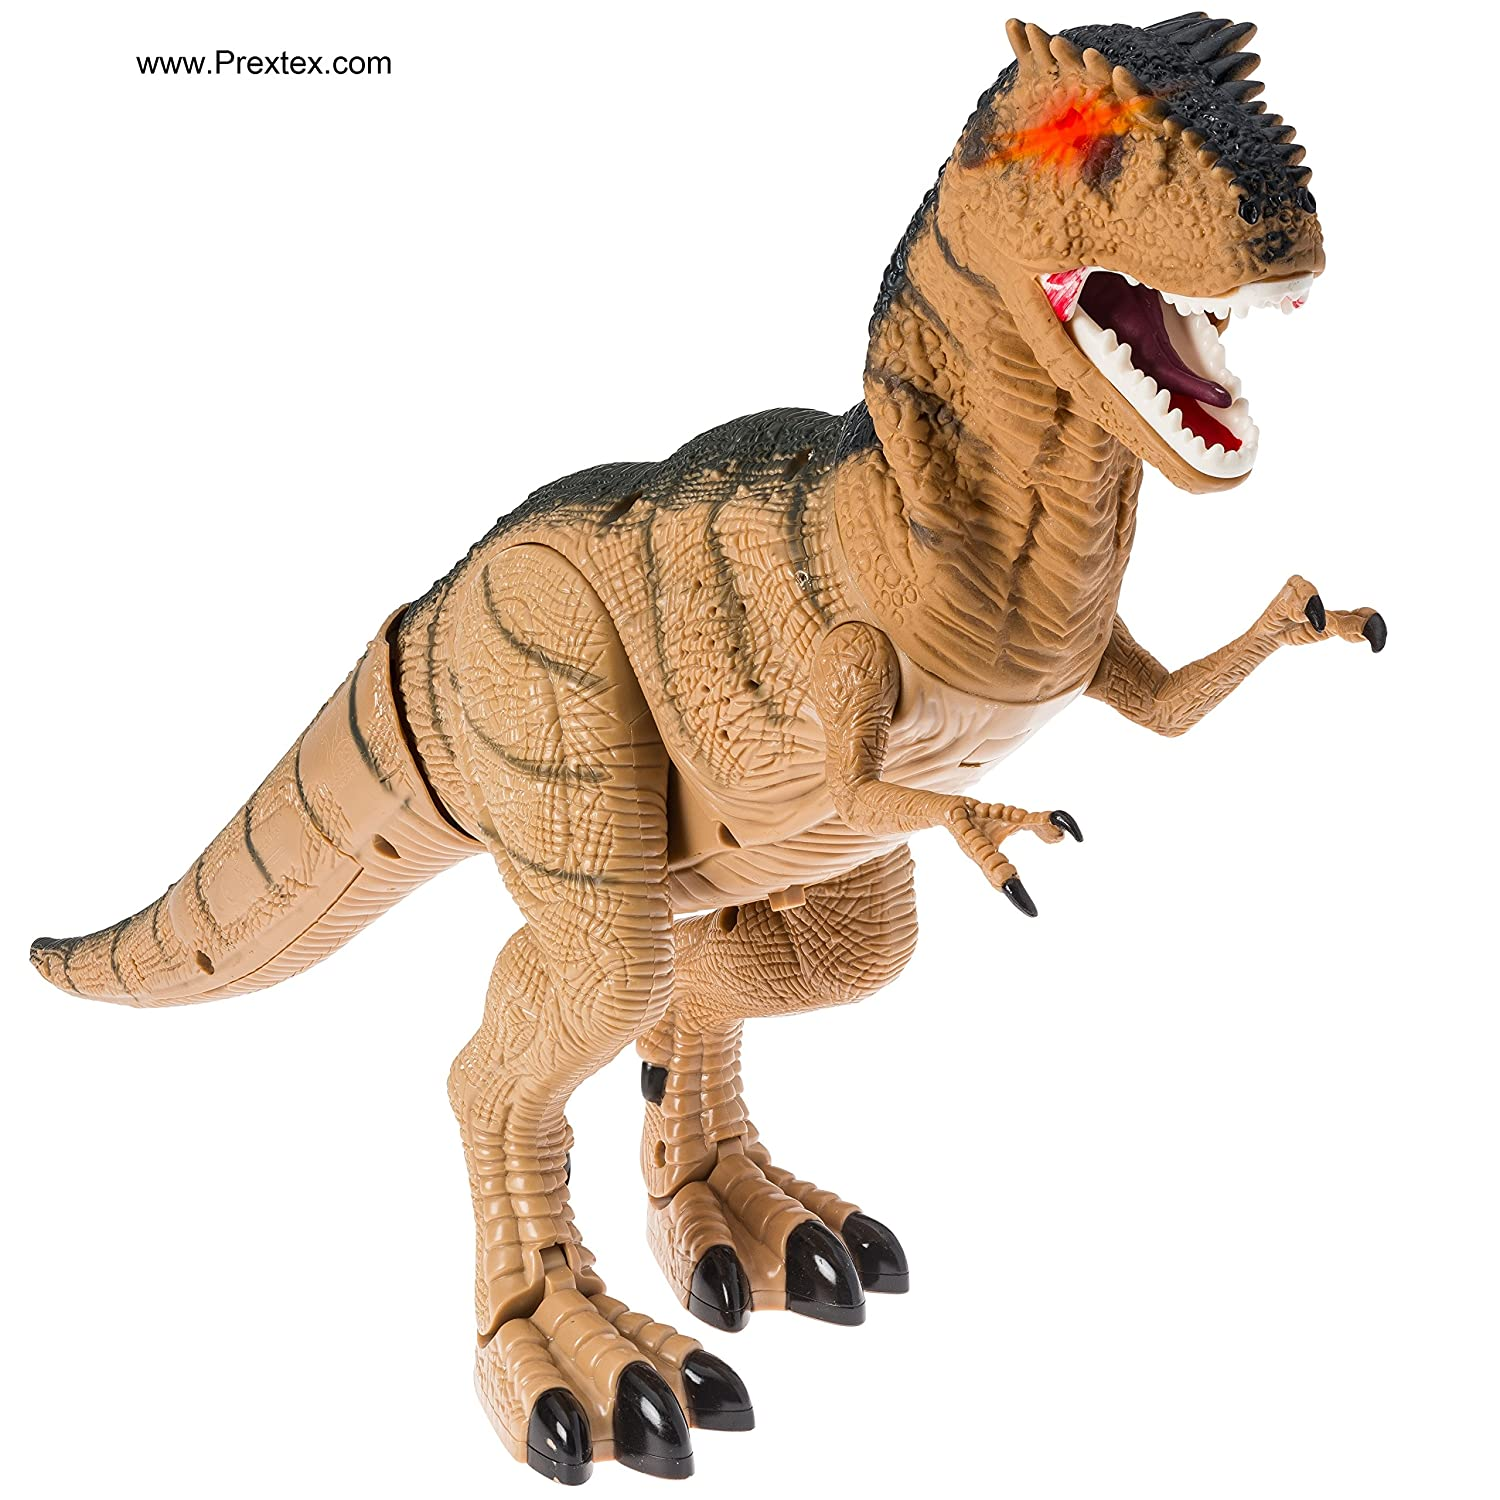 [Prextex]Prextex Battery Powered Walking Dinosaur Toy That Roars And Shakes While Eyes Are Blinking PR-BOD8993 [並行輸入品] B01DOCNBFG